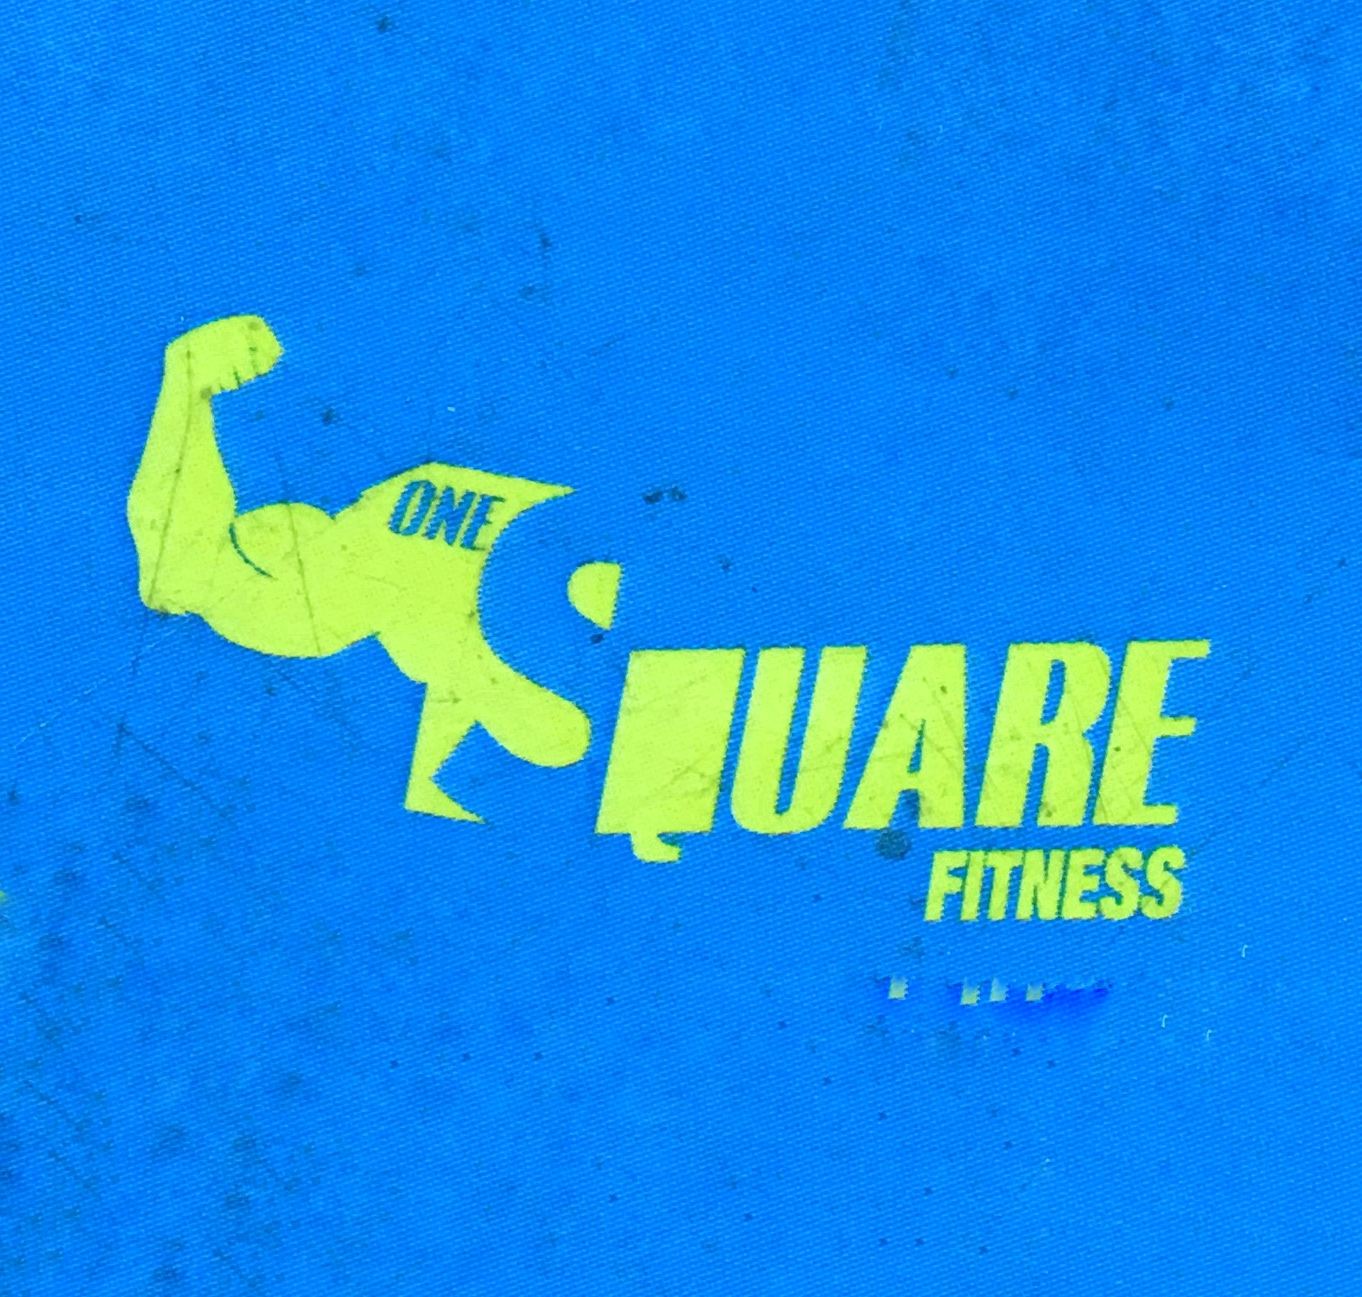 One Square Fitness